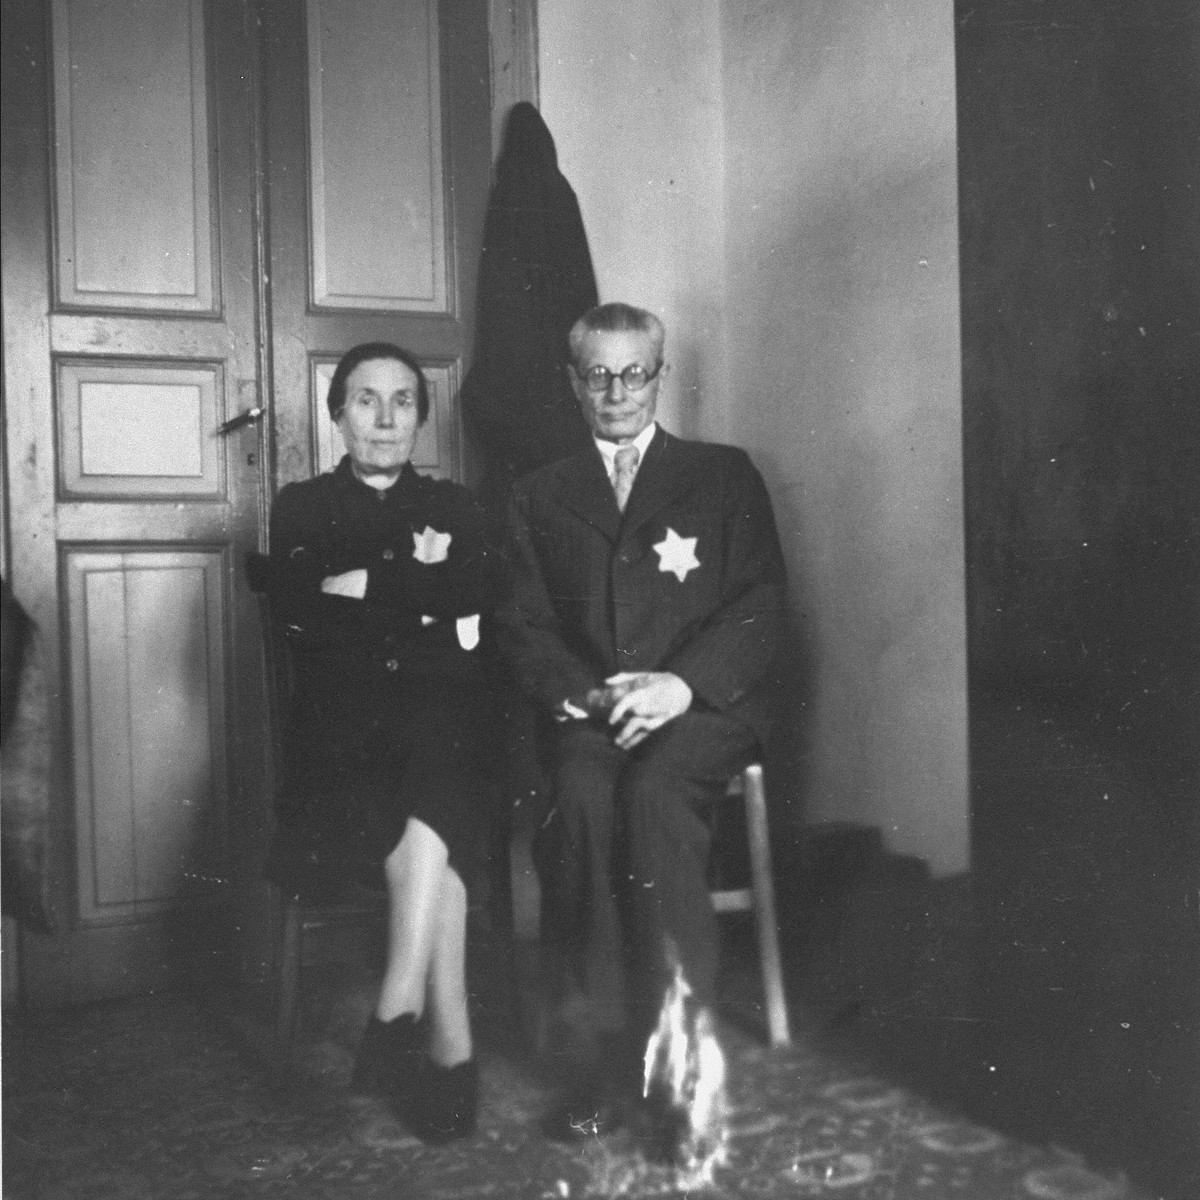 A Jewish couple wearing the yellow star poses in their apartment in Salonika.  Pictured are Rachel and Joseph Chasid, the parents of Margo (Chasid) Melech.